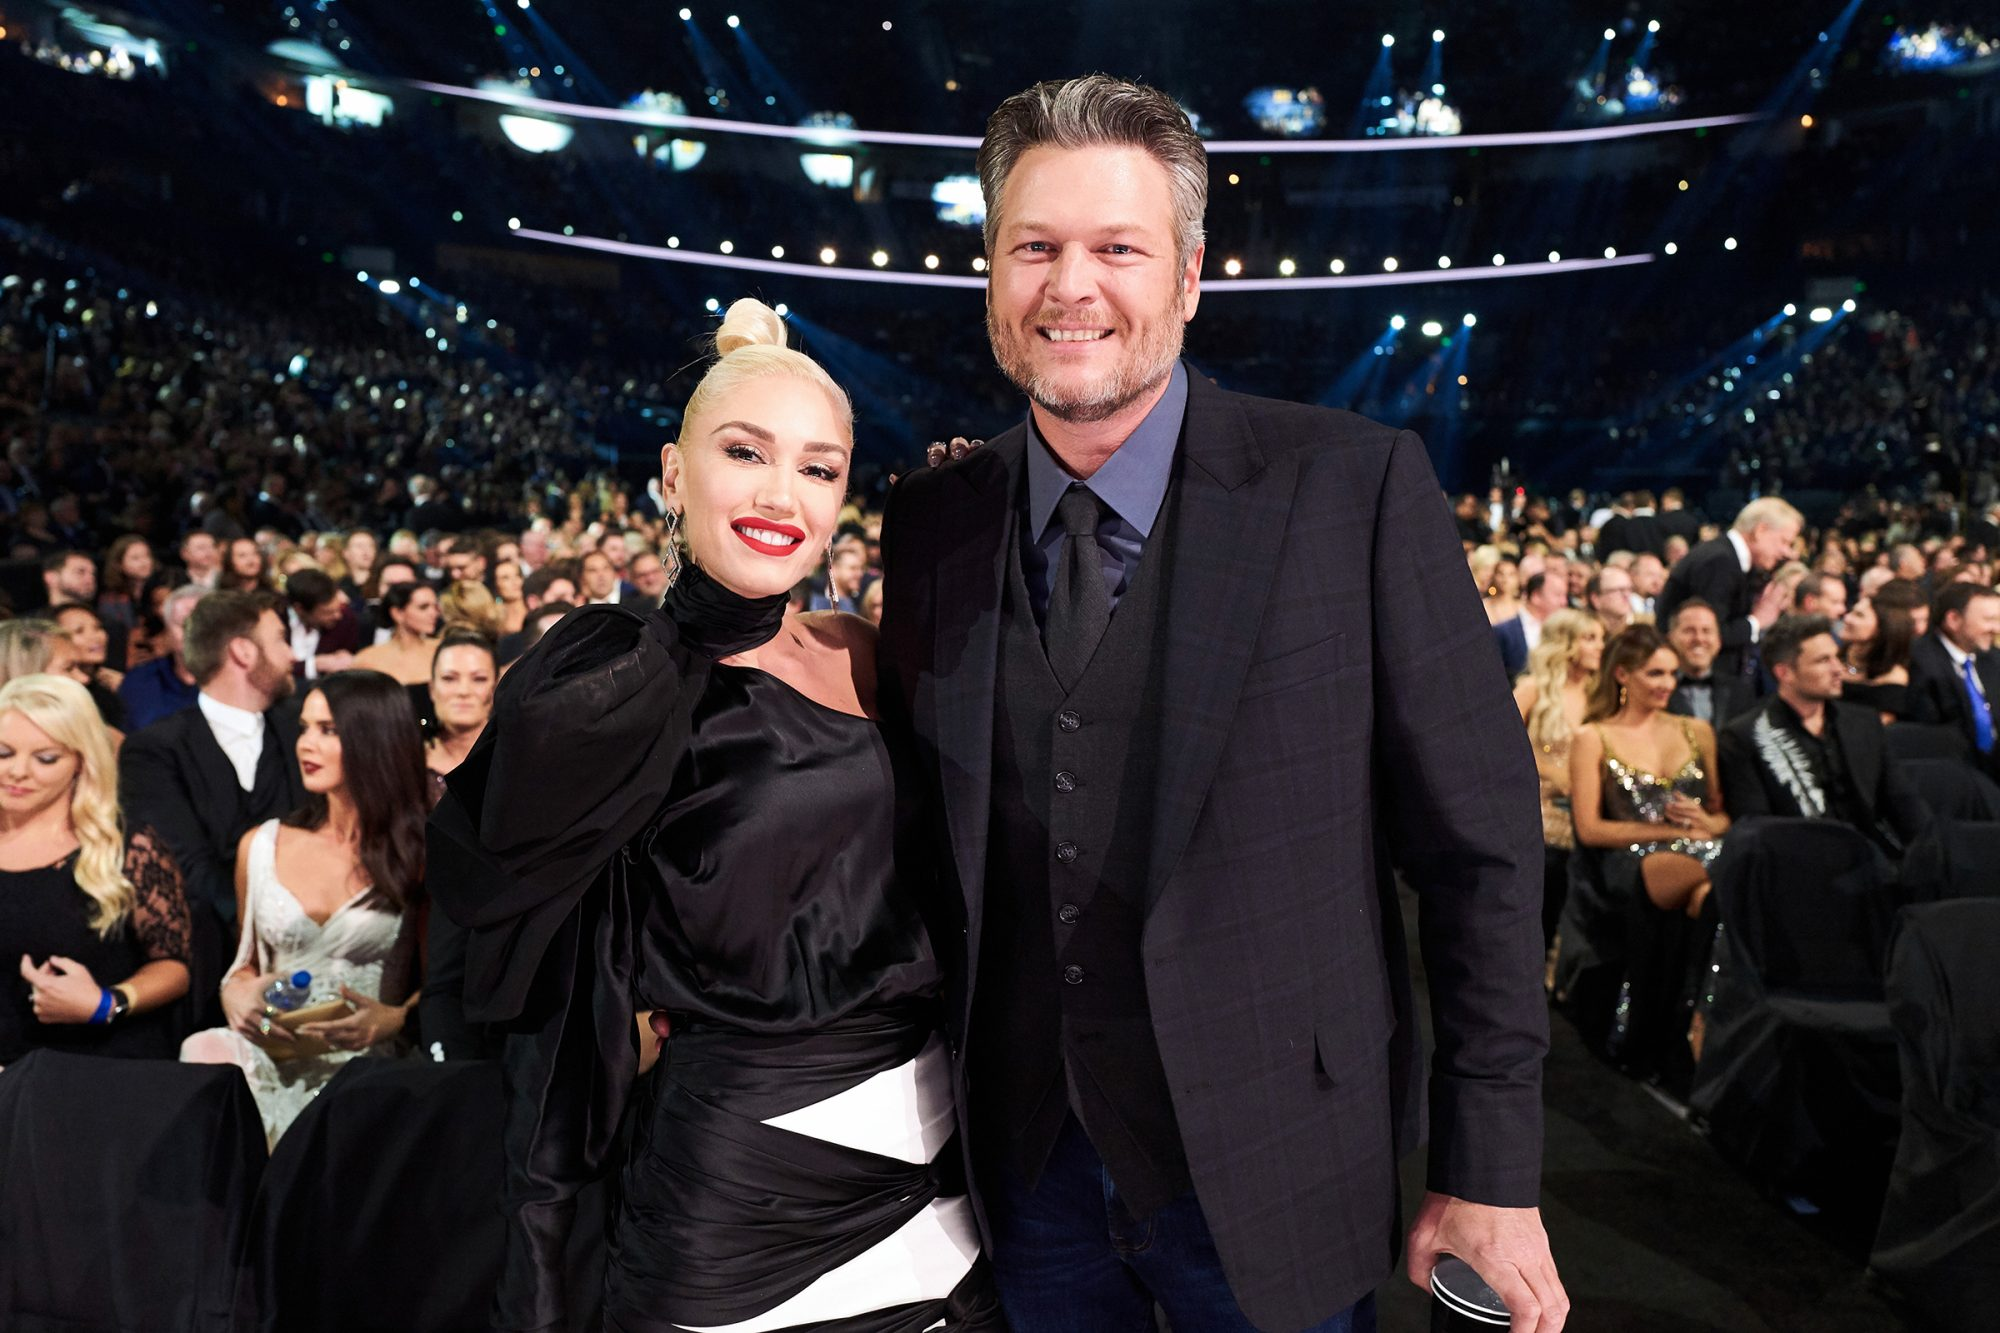 Gwen Stefani (L) and Blake Shelton attend the 53rd annual CMA Awards at the Bridgestone Arena on November 13, 2019 in Nashville, Tennessee